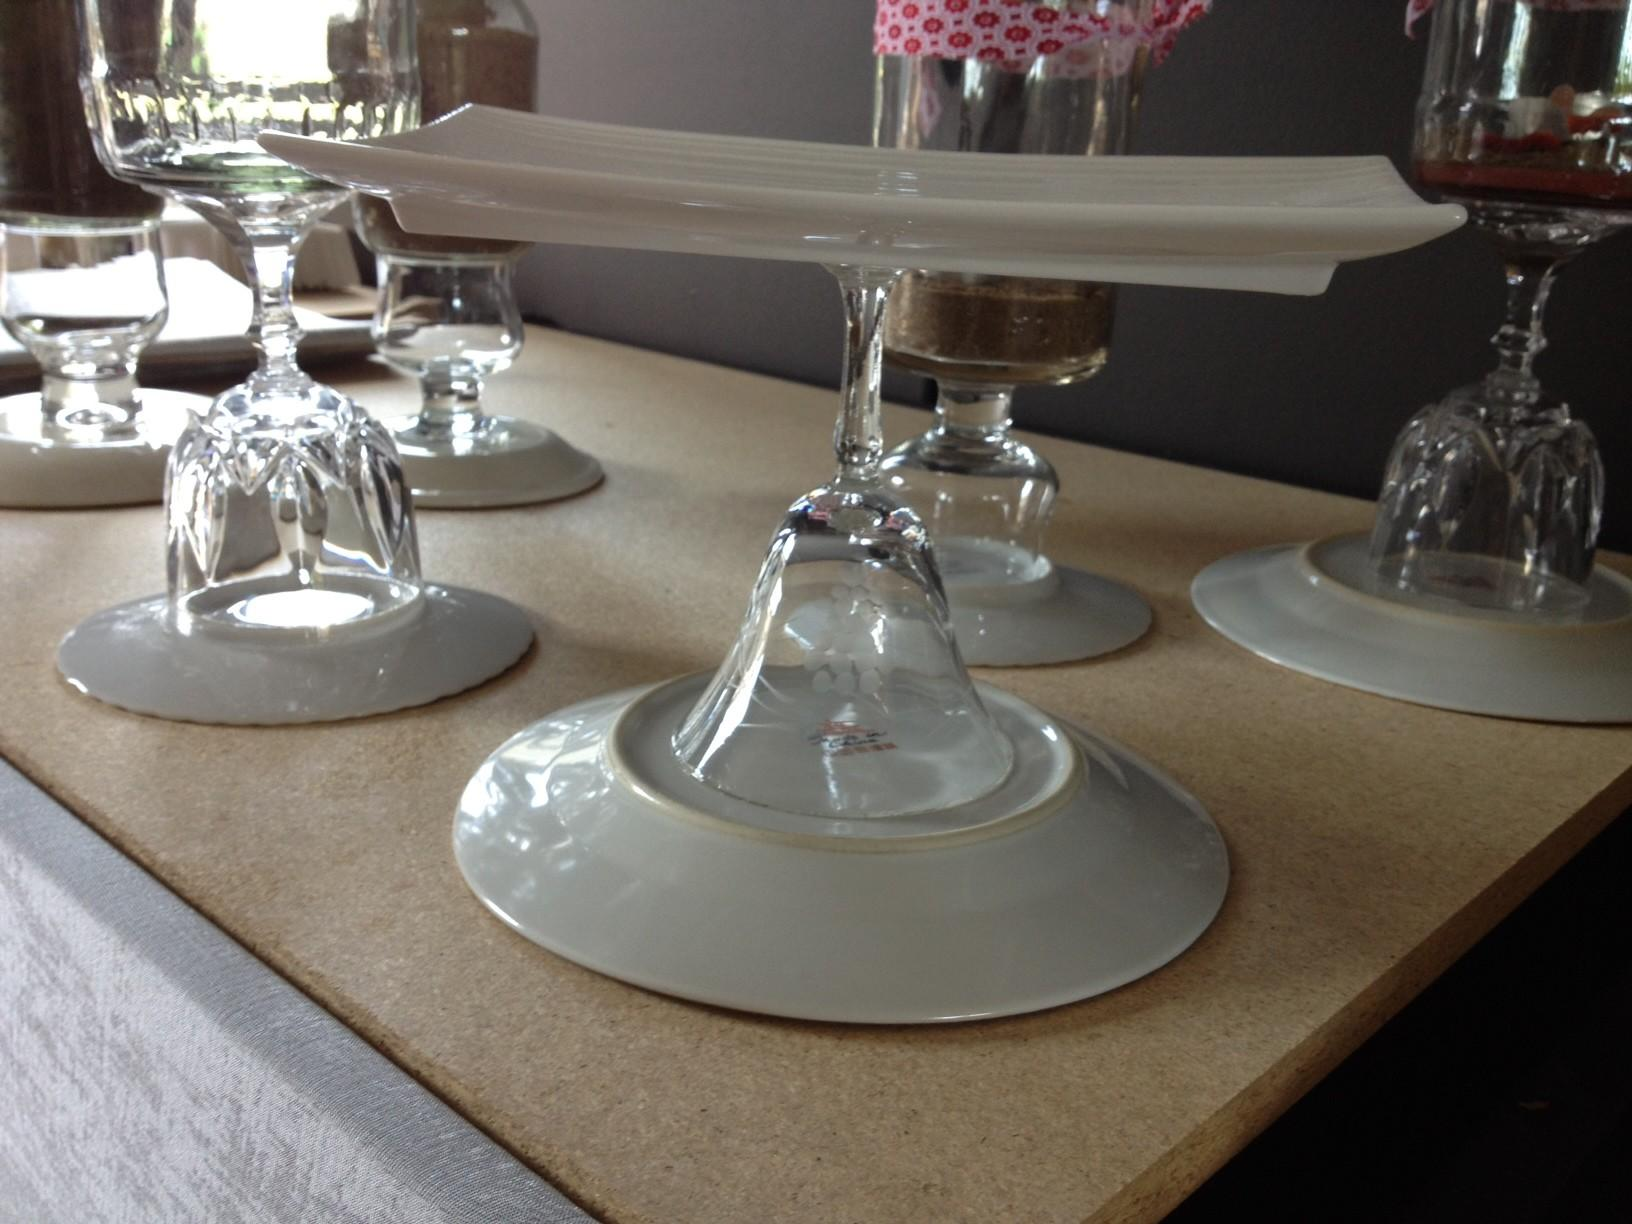 Diy Tiered Cake Stand Plates Before2 Inspiration